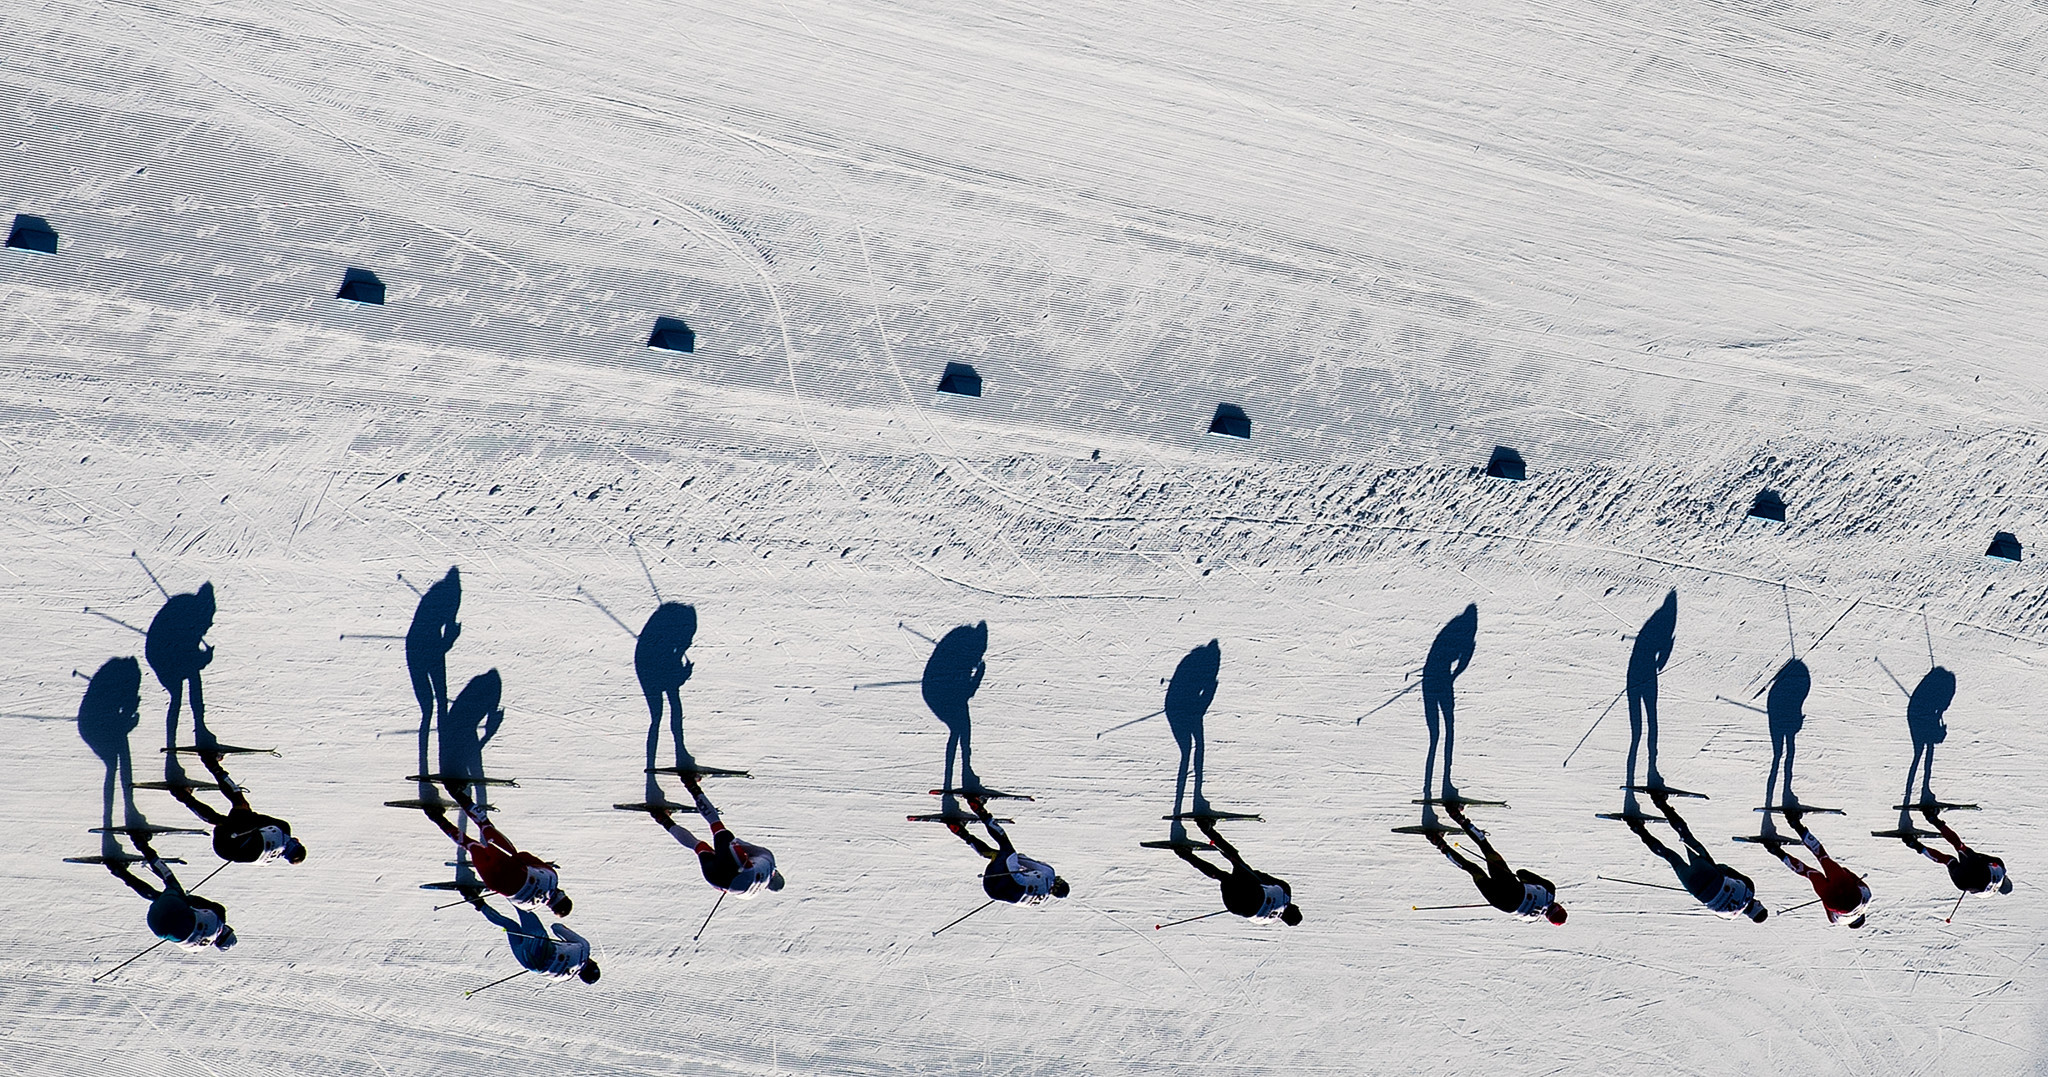 Stora Enso will be the presenting sponsor for the FIS Nordic World Ski Championships in Austria, as it was in Finland ©Getty Images